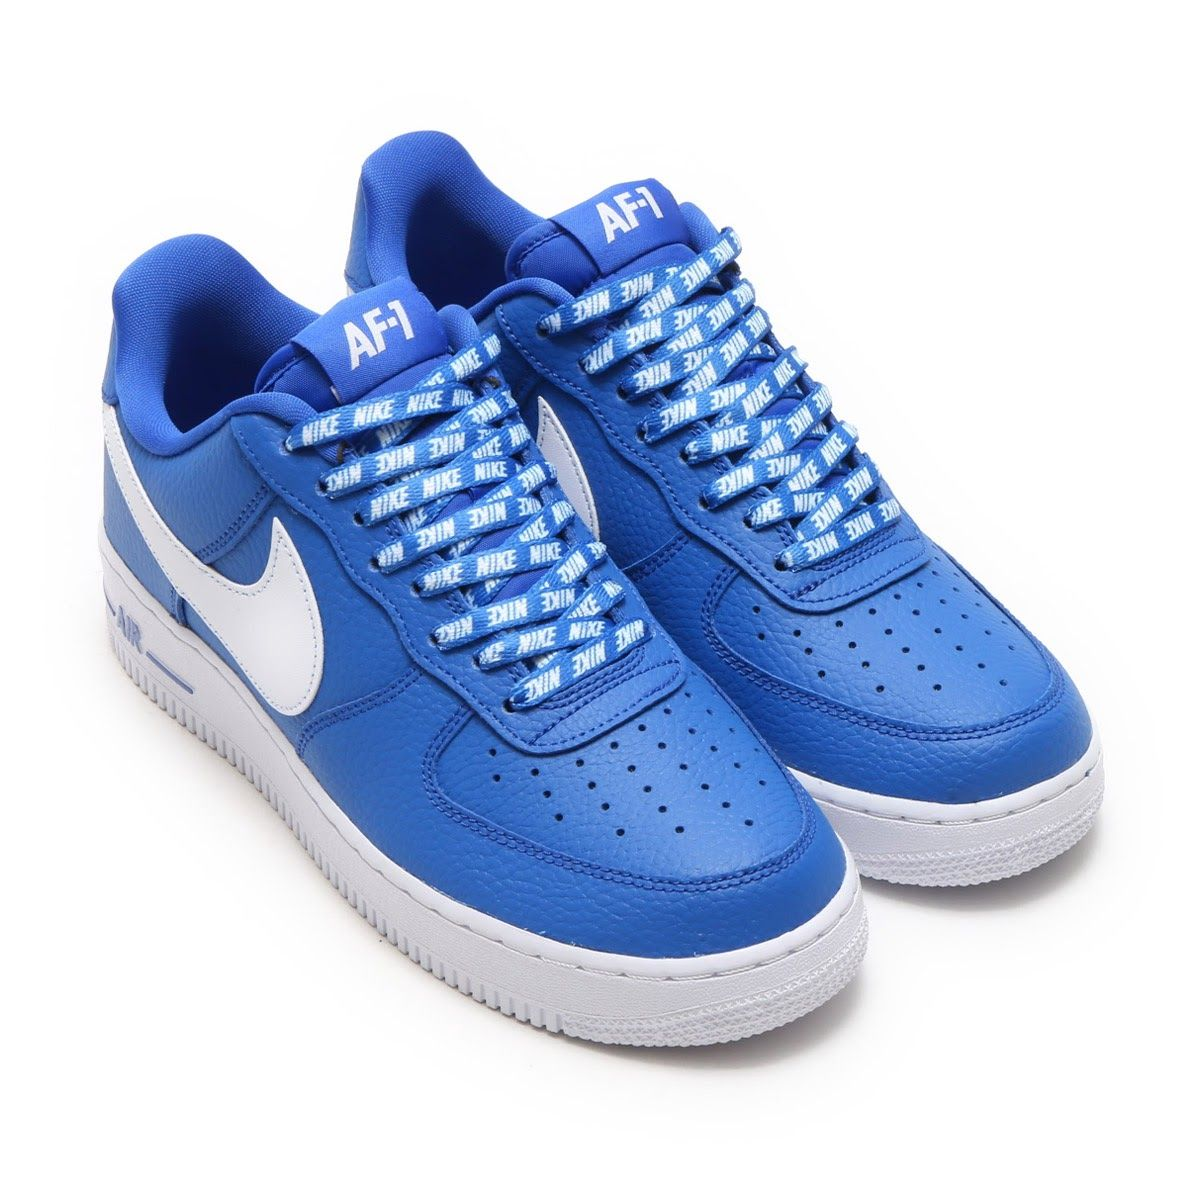 24f692c4672 NIKE AIR FORCE 1 '07 LV8 GAME ROYAL/WHITE | love these sneakers in ...